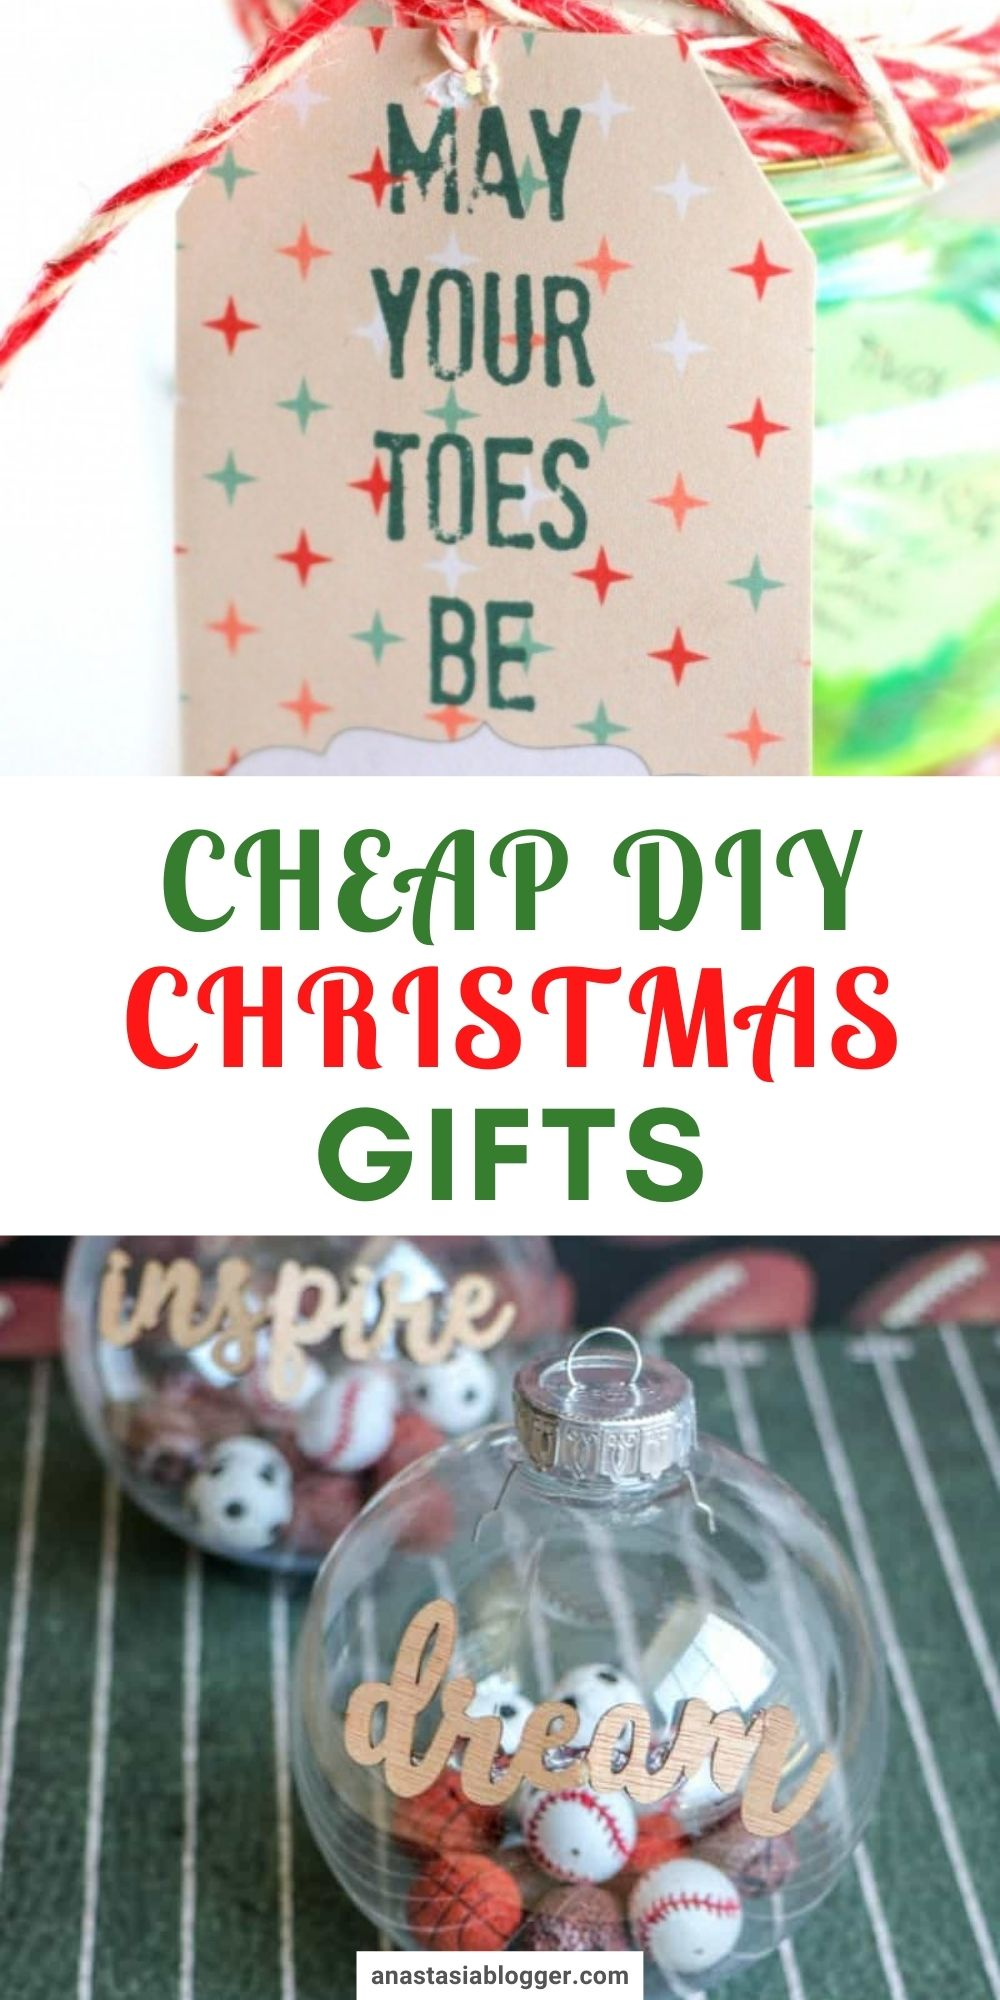 15 Cheap Diy Christmas Gift Ideas To Try This Year In 2020 Diy Christmas Gifts Cheap Diy Christmas Gifts Christmas Bazaar Ideas